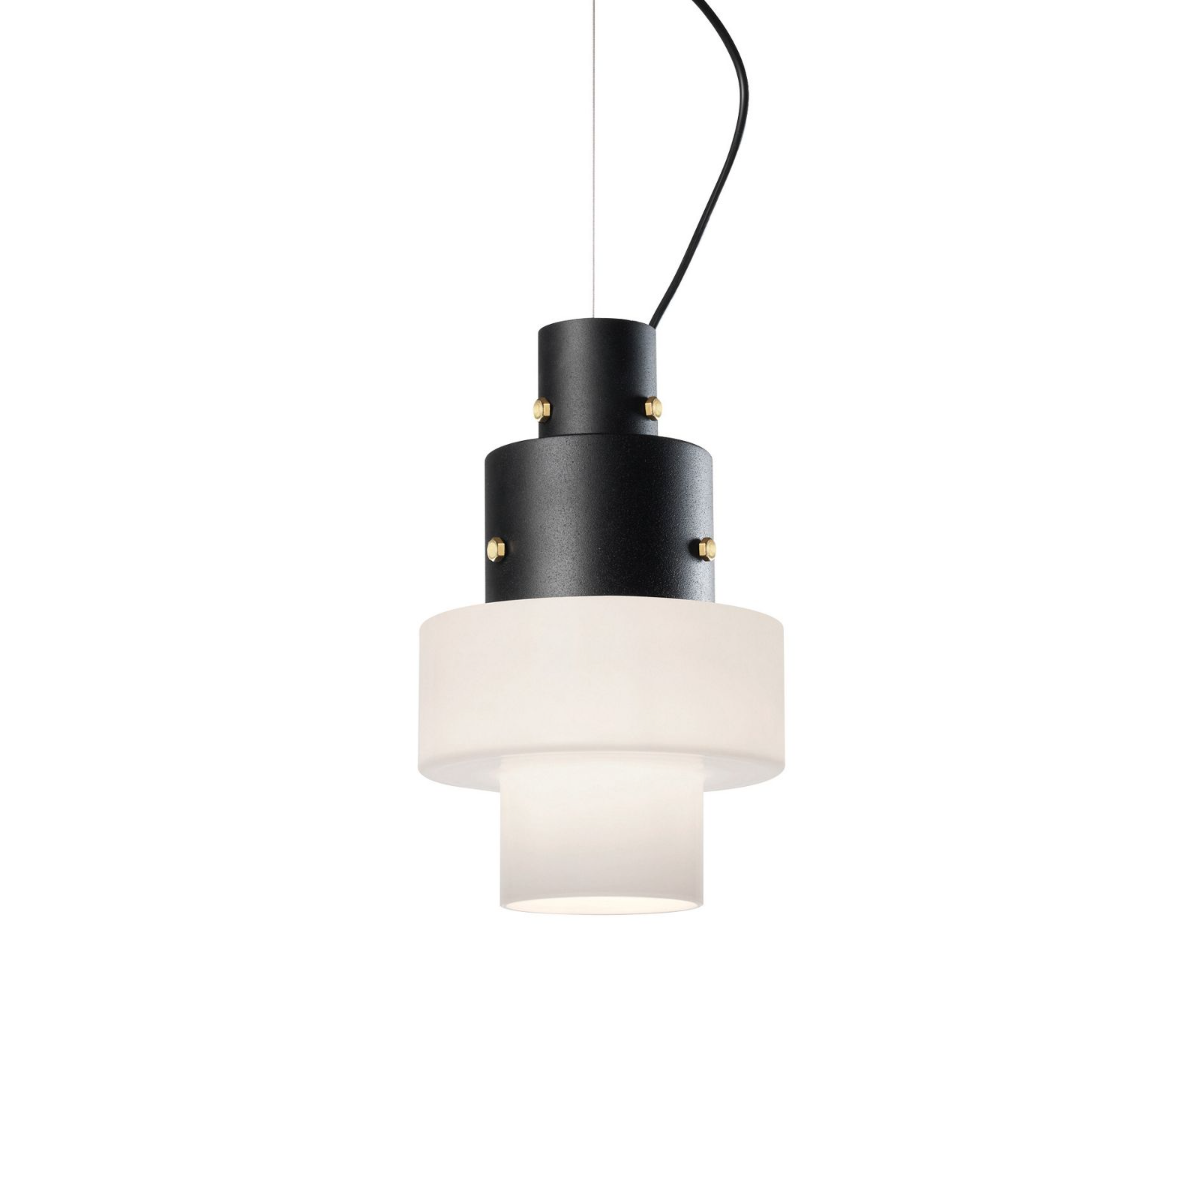 Diesel x Foscarini Gask Suspension Lamp 層次美學 立塔造型 玻璃 吊燈